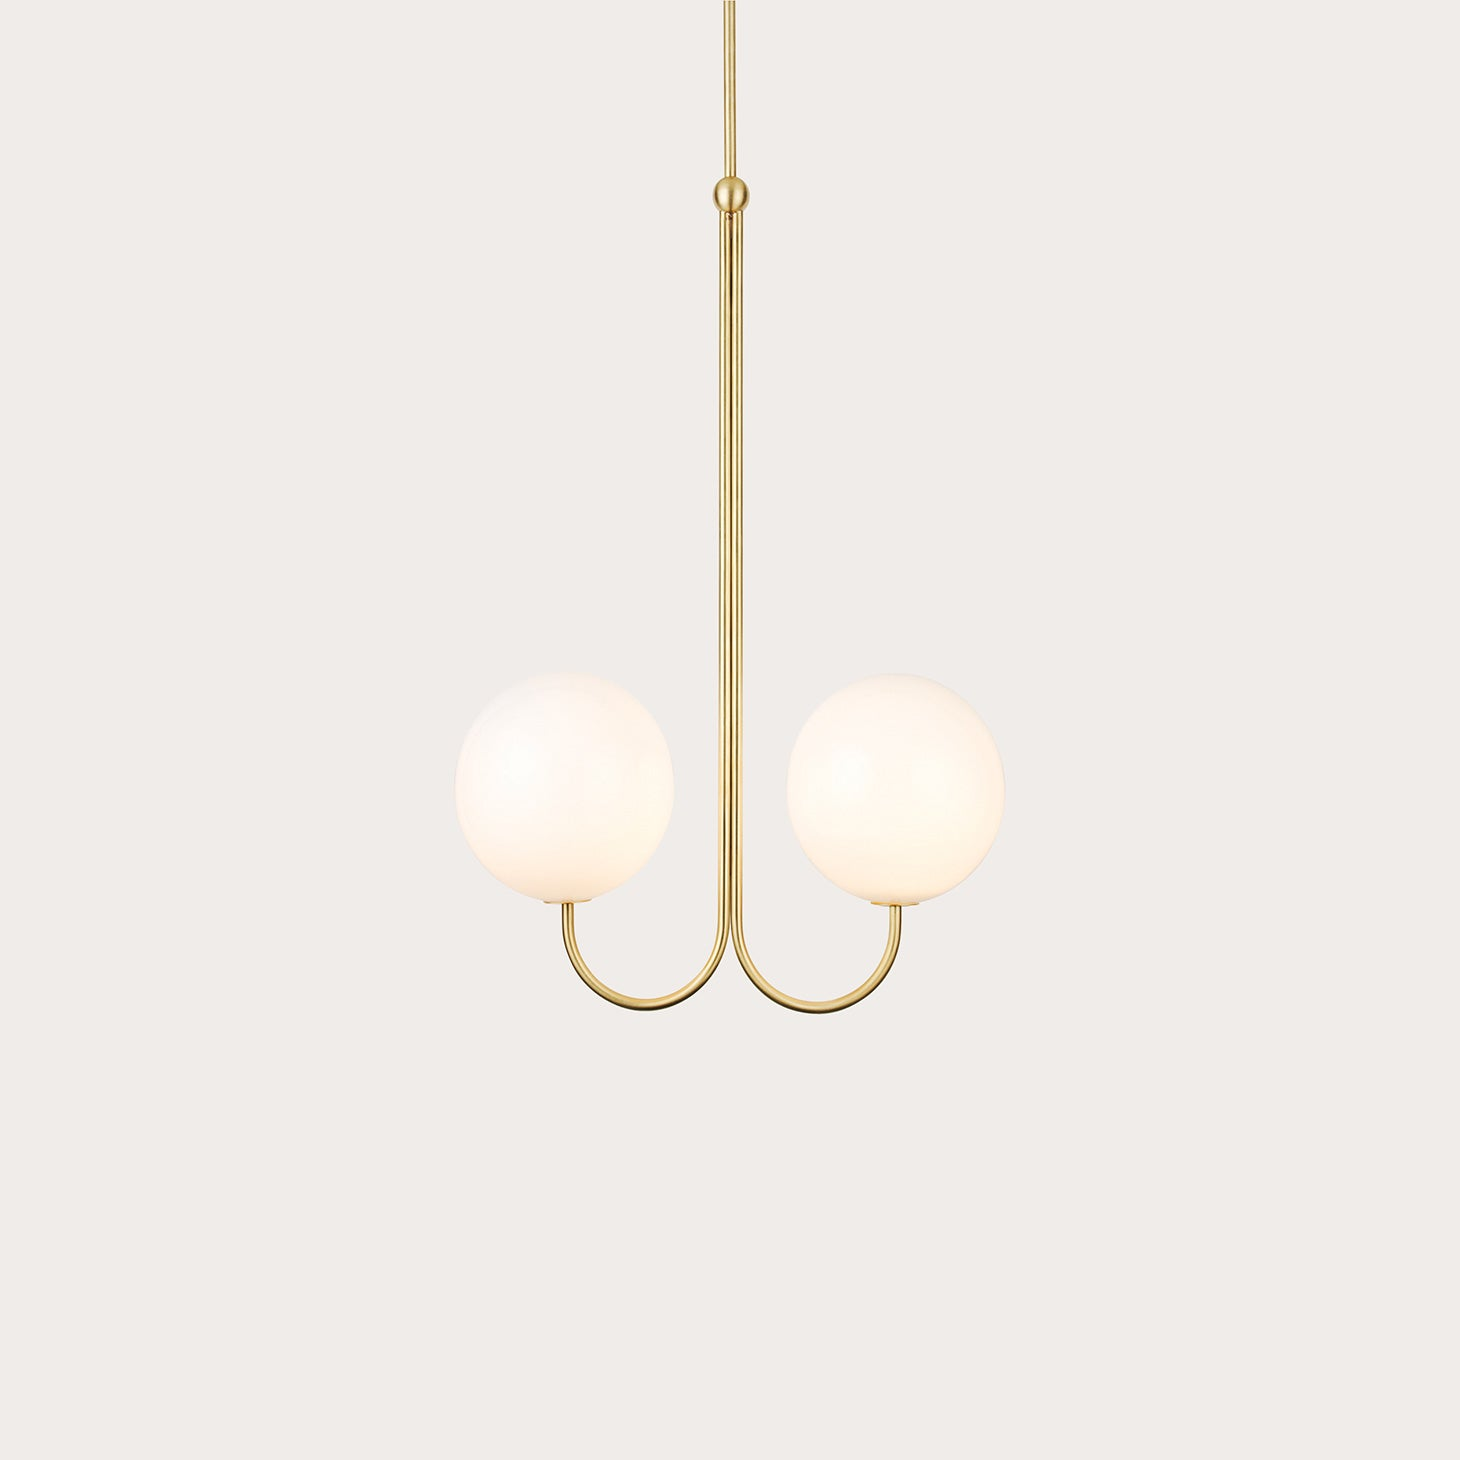 Double Angle Lighting Michael Anastassiades Designer Furniture Sku: 717-100-10067